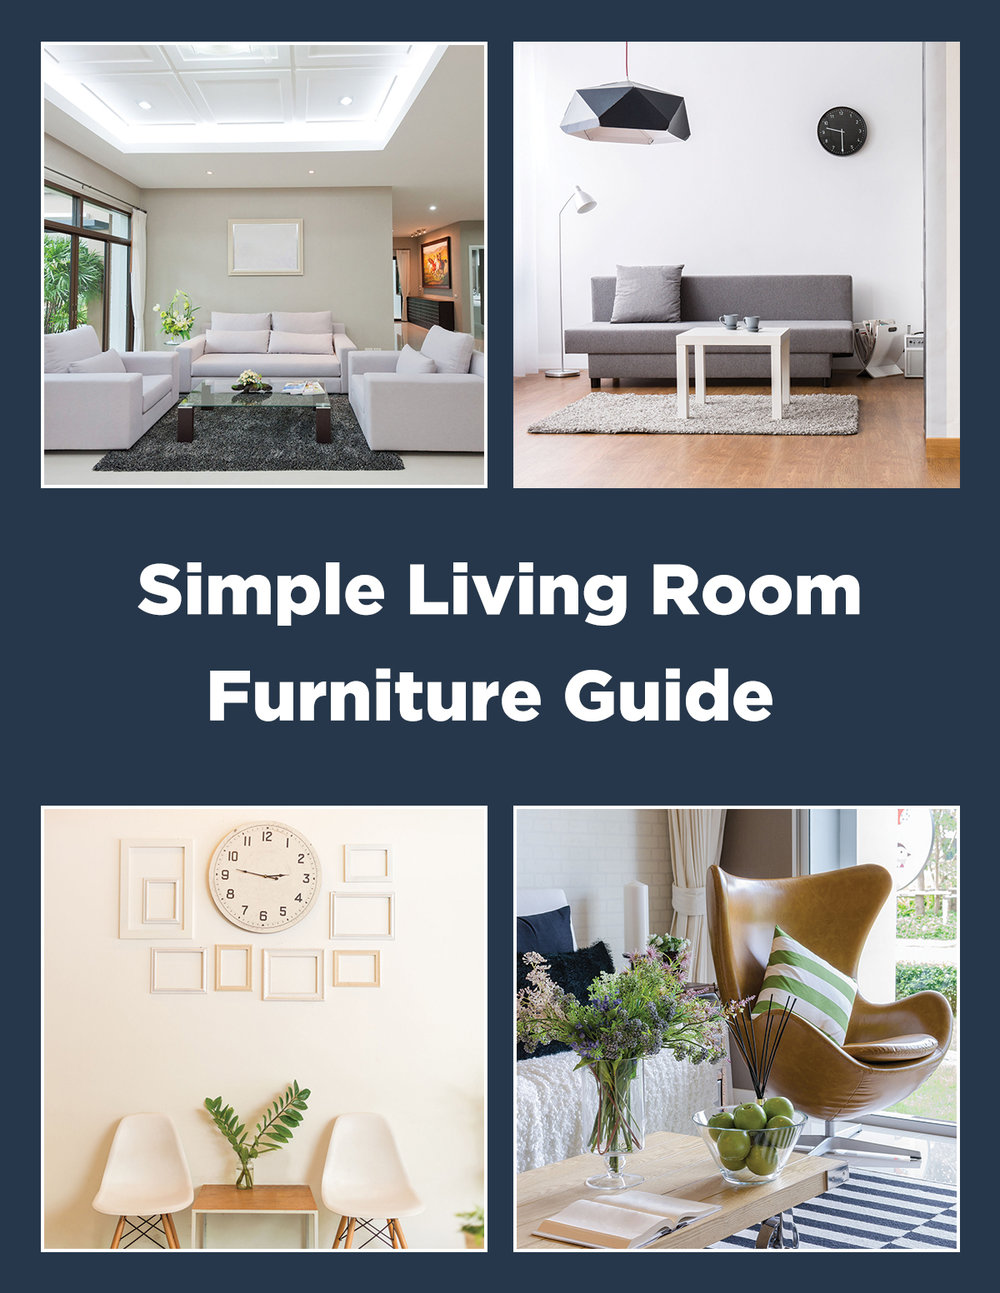 A Simple Guide To Buying Furniture For Your Living Room U2014 HATCH REALTY GROUP